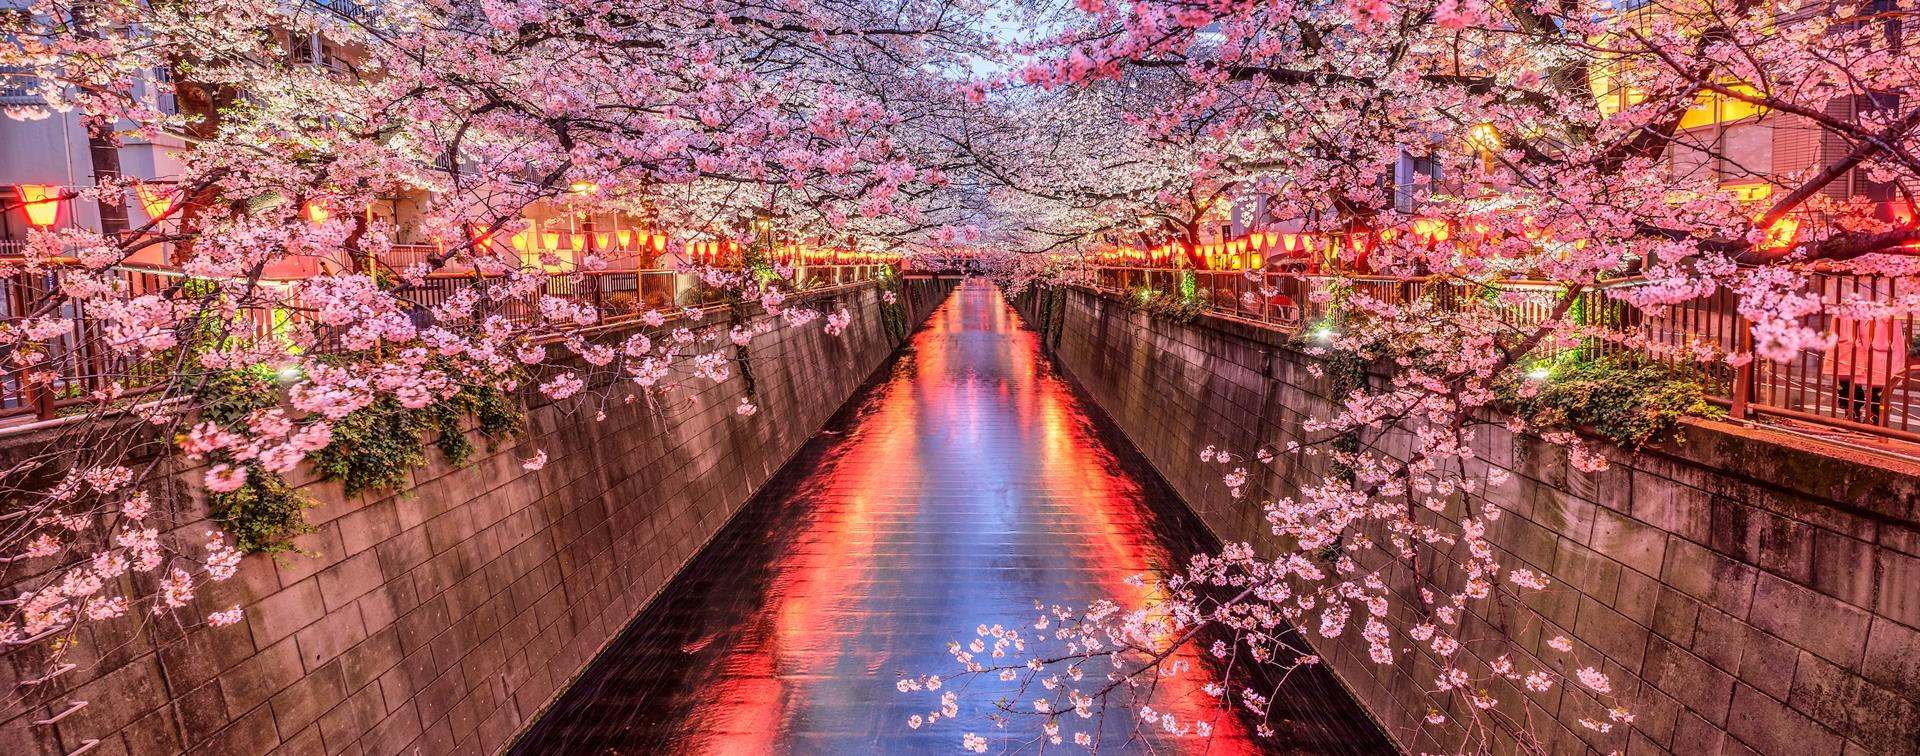 Picture of cherry blossoms along a river in Japan.